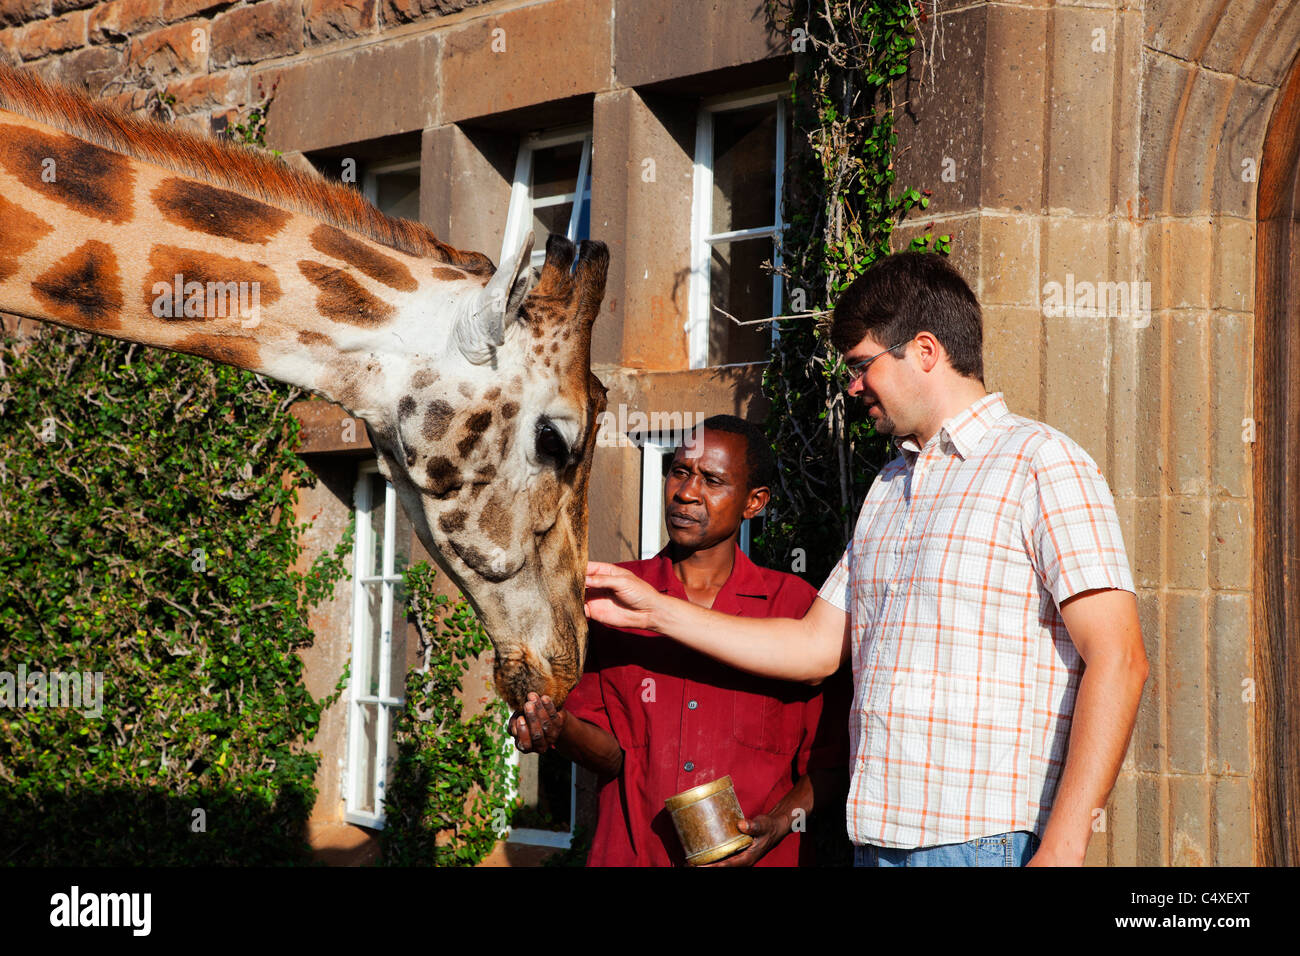 Rothschild Giraffe (Giraffa camelopardalis rothschildi) Is one of 9 subspecies of giraffe.Griaffe Manor Kenya. Dist. - Stock Image